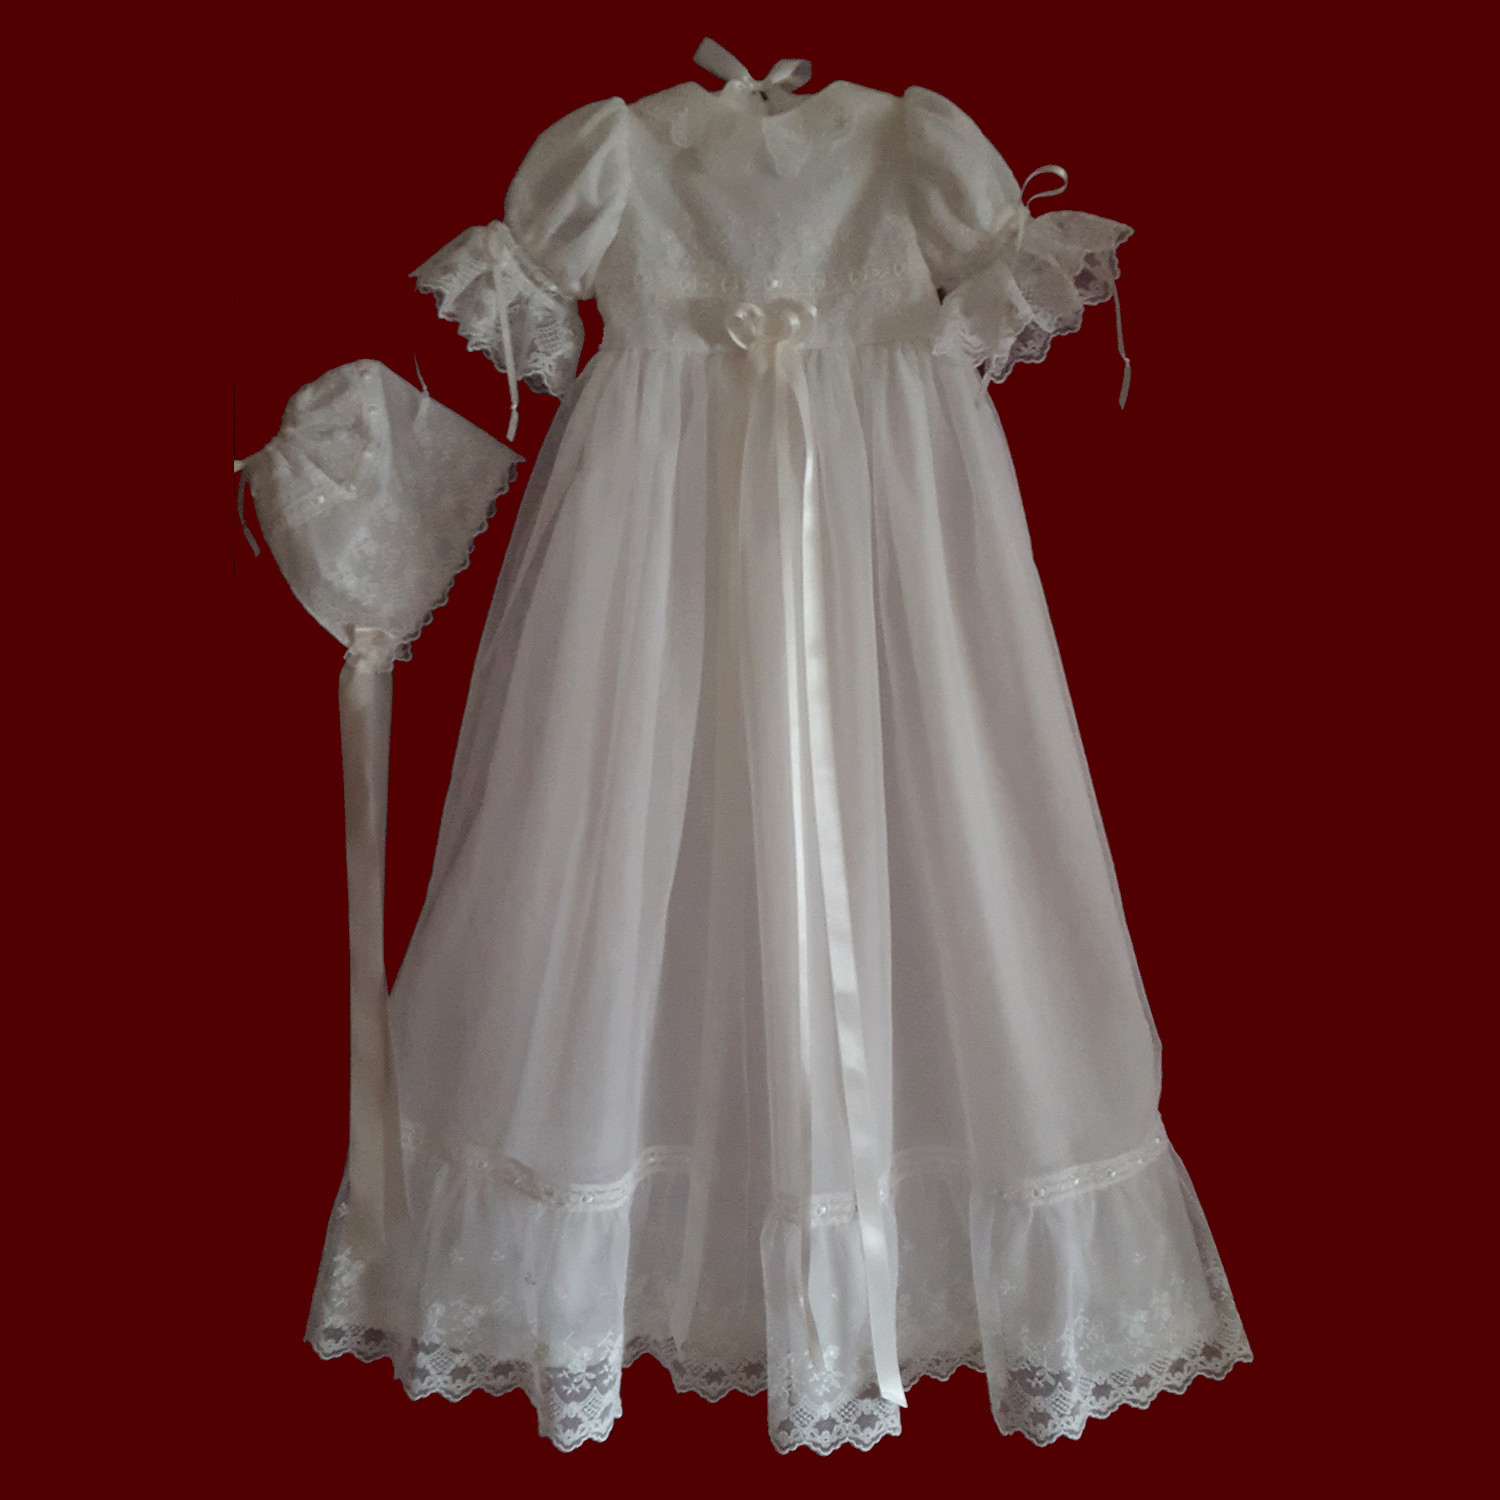 Embroidered English Netting Lace Christening Gown, Slip & Bonnet, Size 3-6 Months